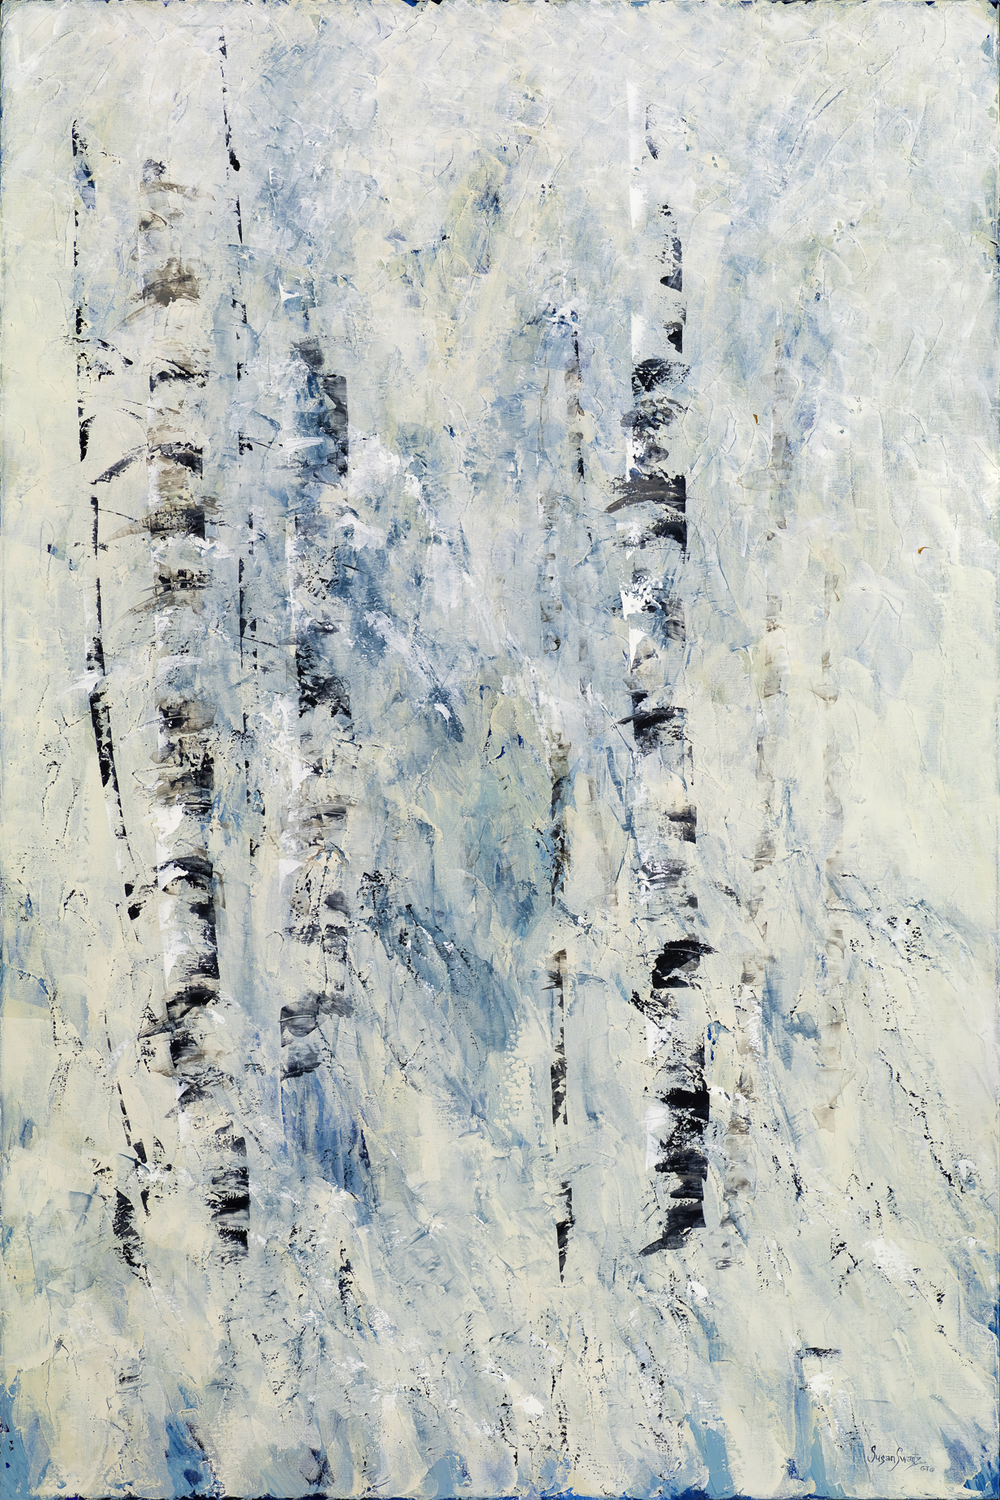 Winter's Hush II 48 x 72